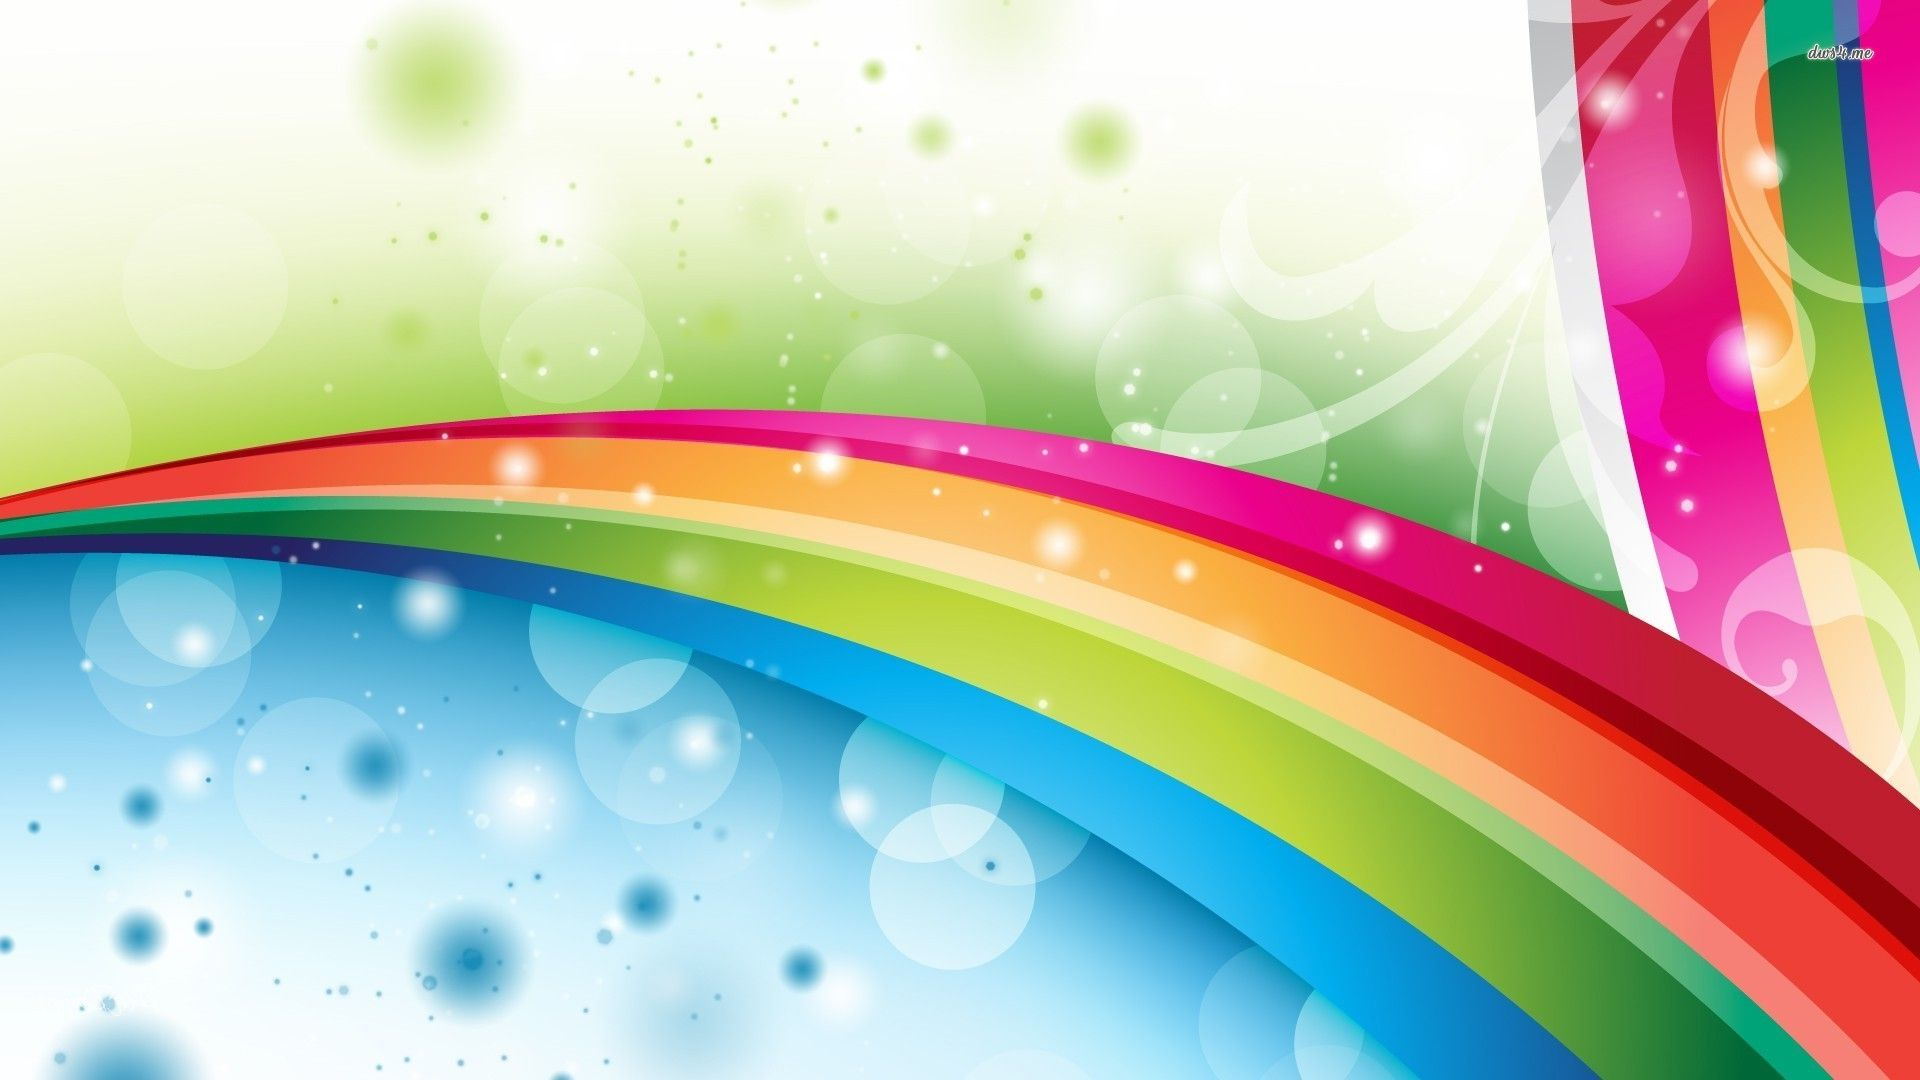 Wallpaper Rainbow Collection For Free Download Rainbow Wallpaper